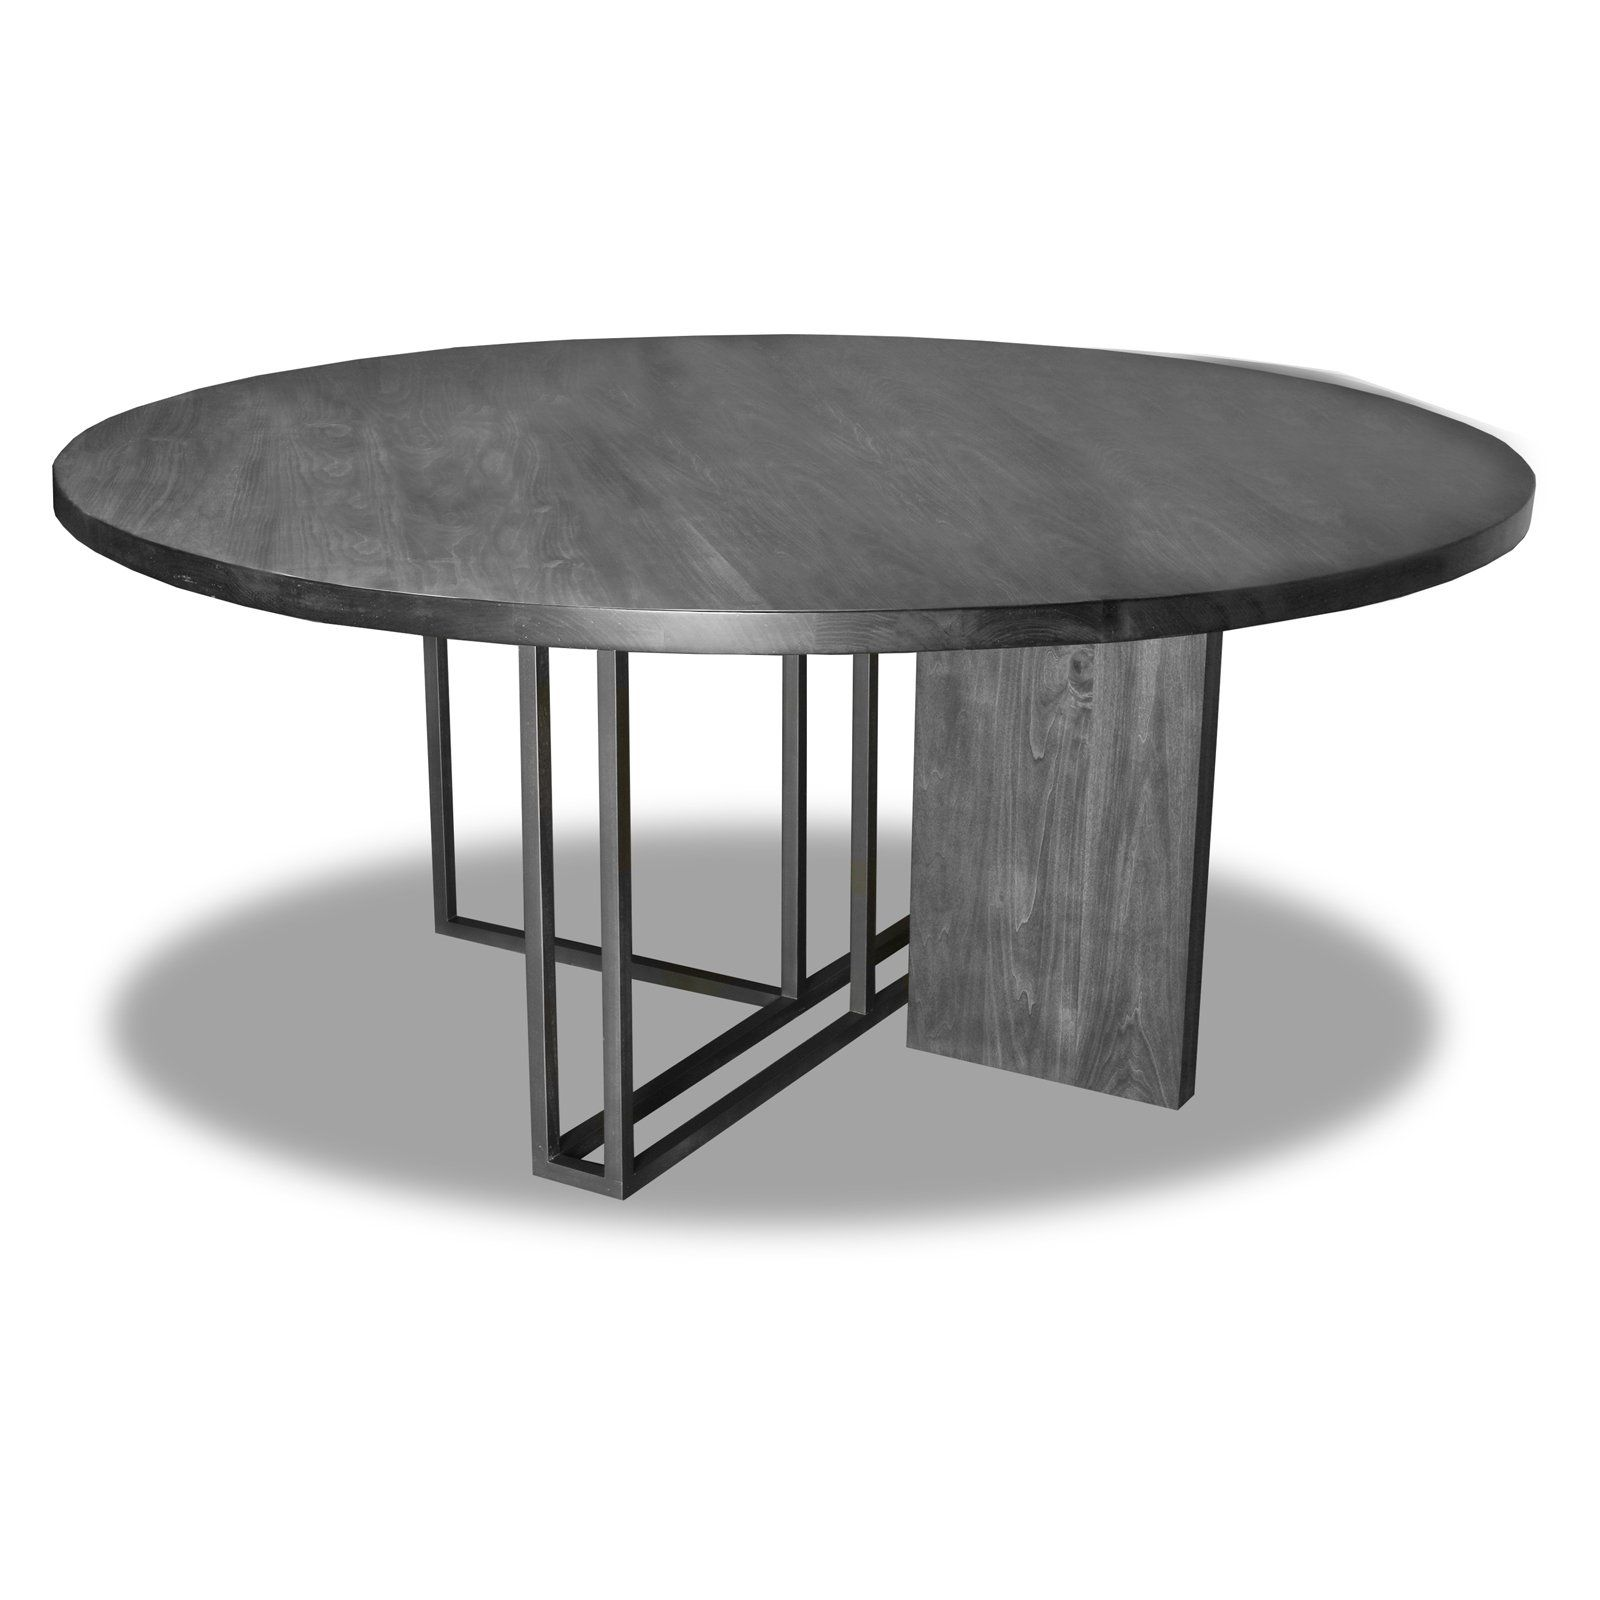 South Cone Highmount Round Dining Table Cement Dining Table Round Dining Table Round Dining